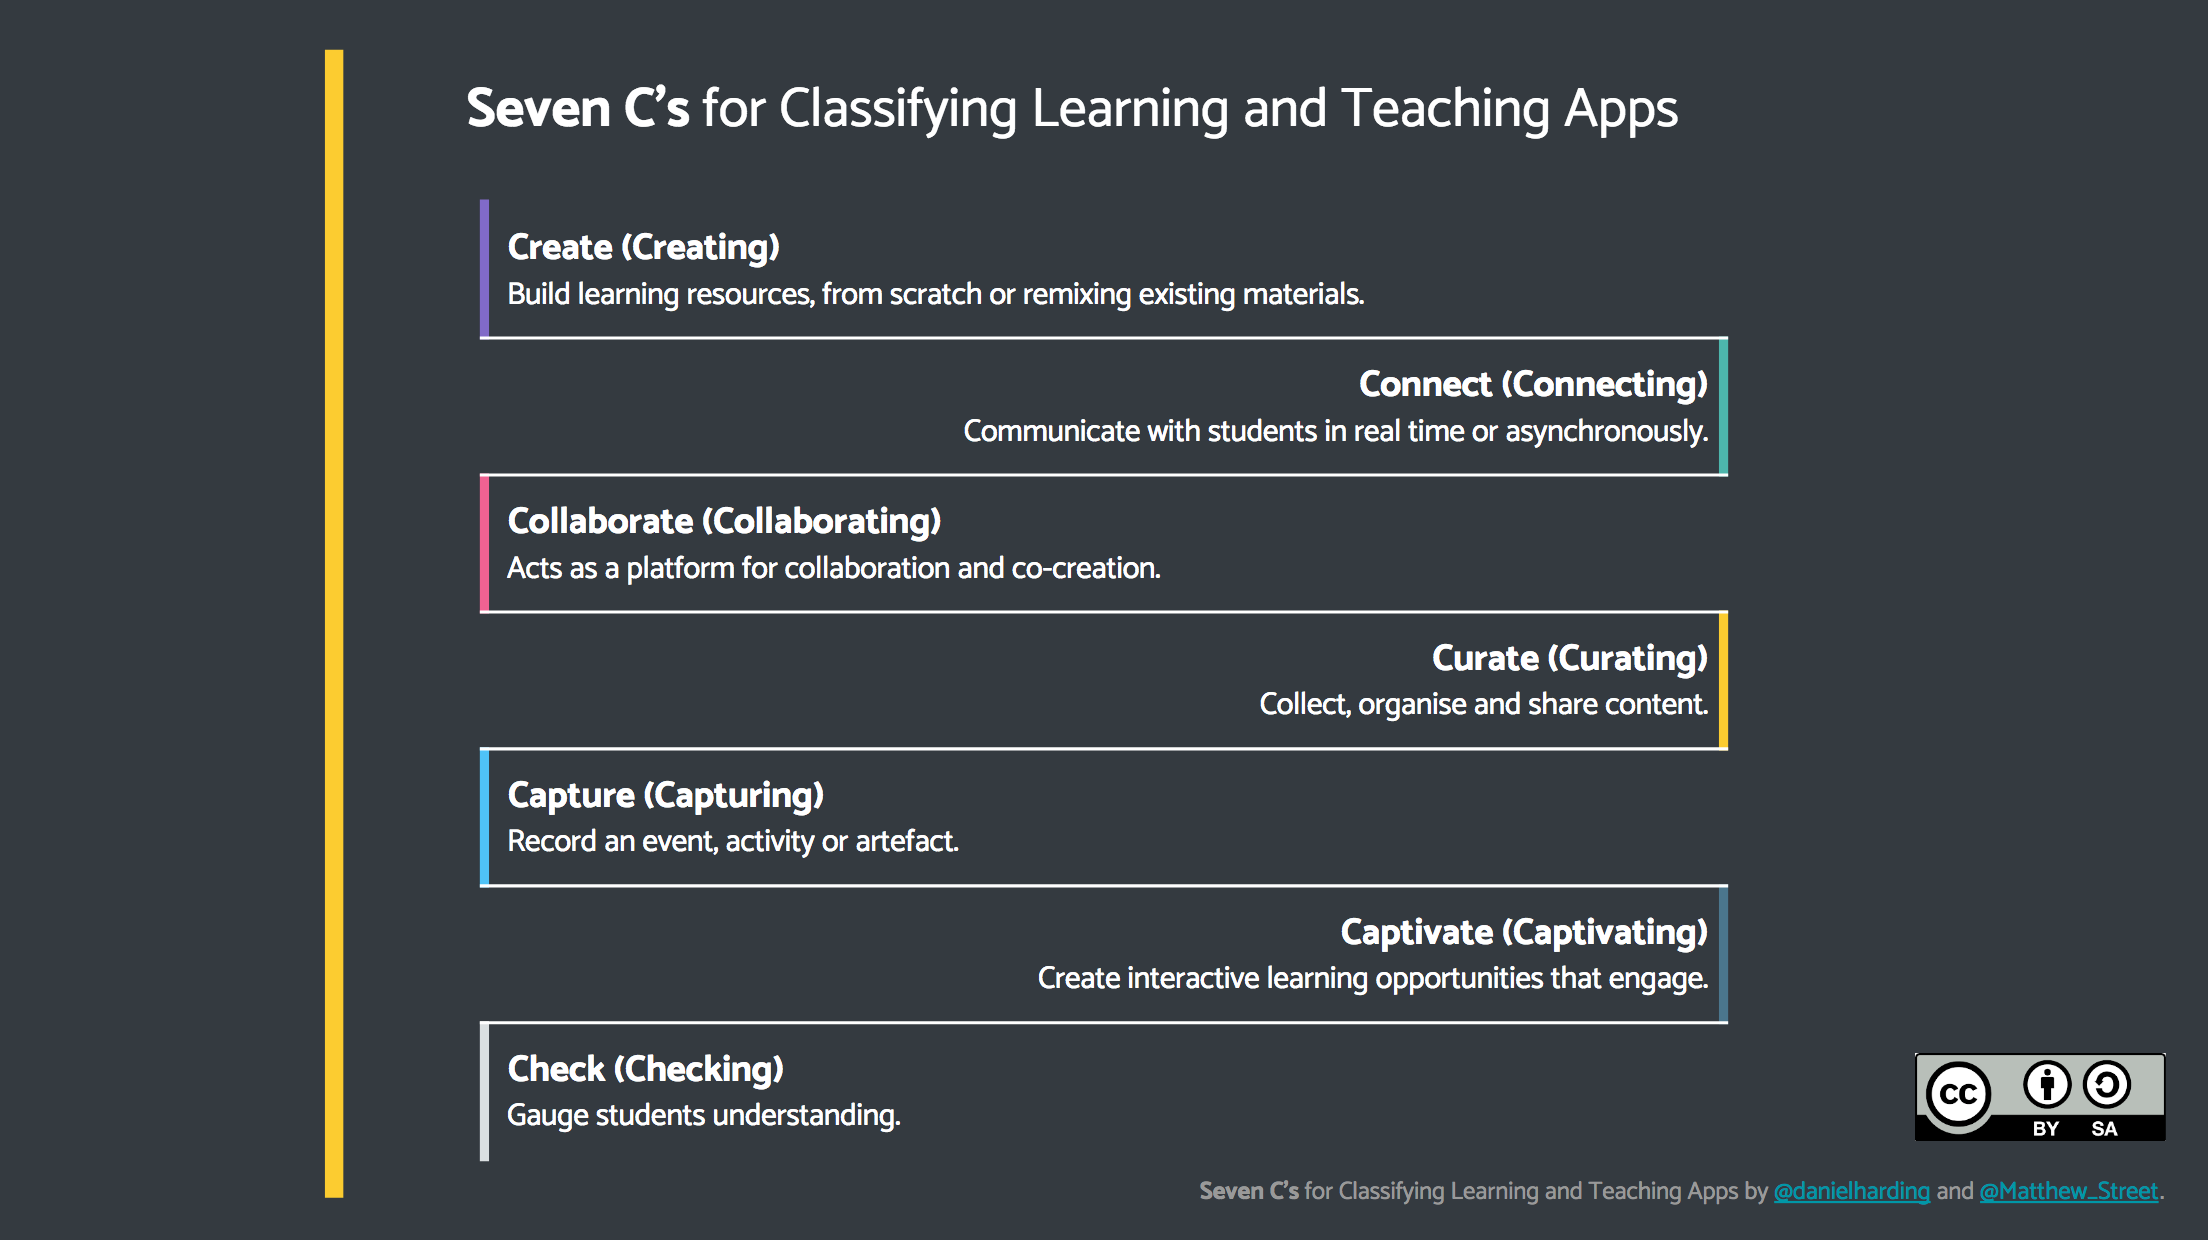 Seven C's for Classifying Learning and Teaching Apps